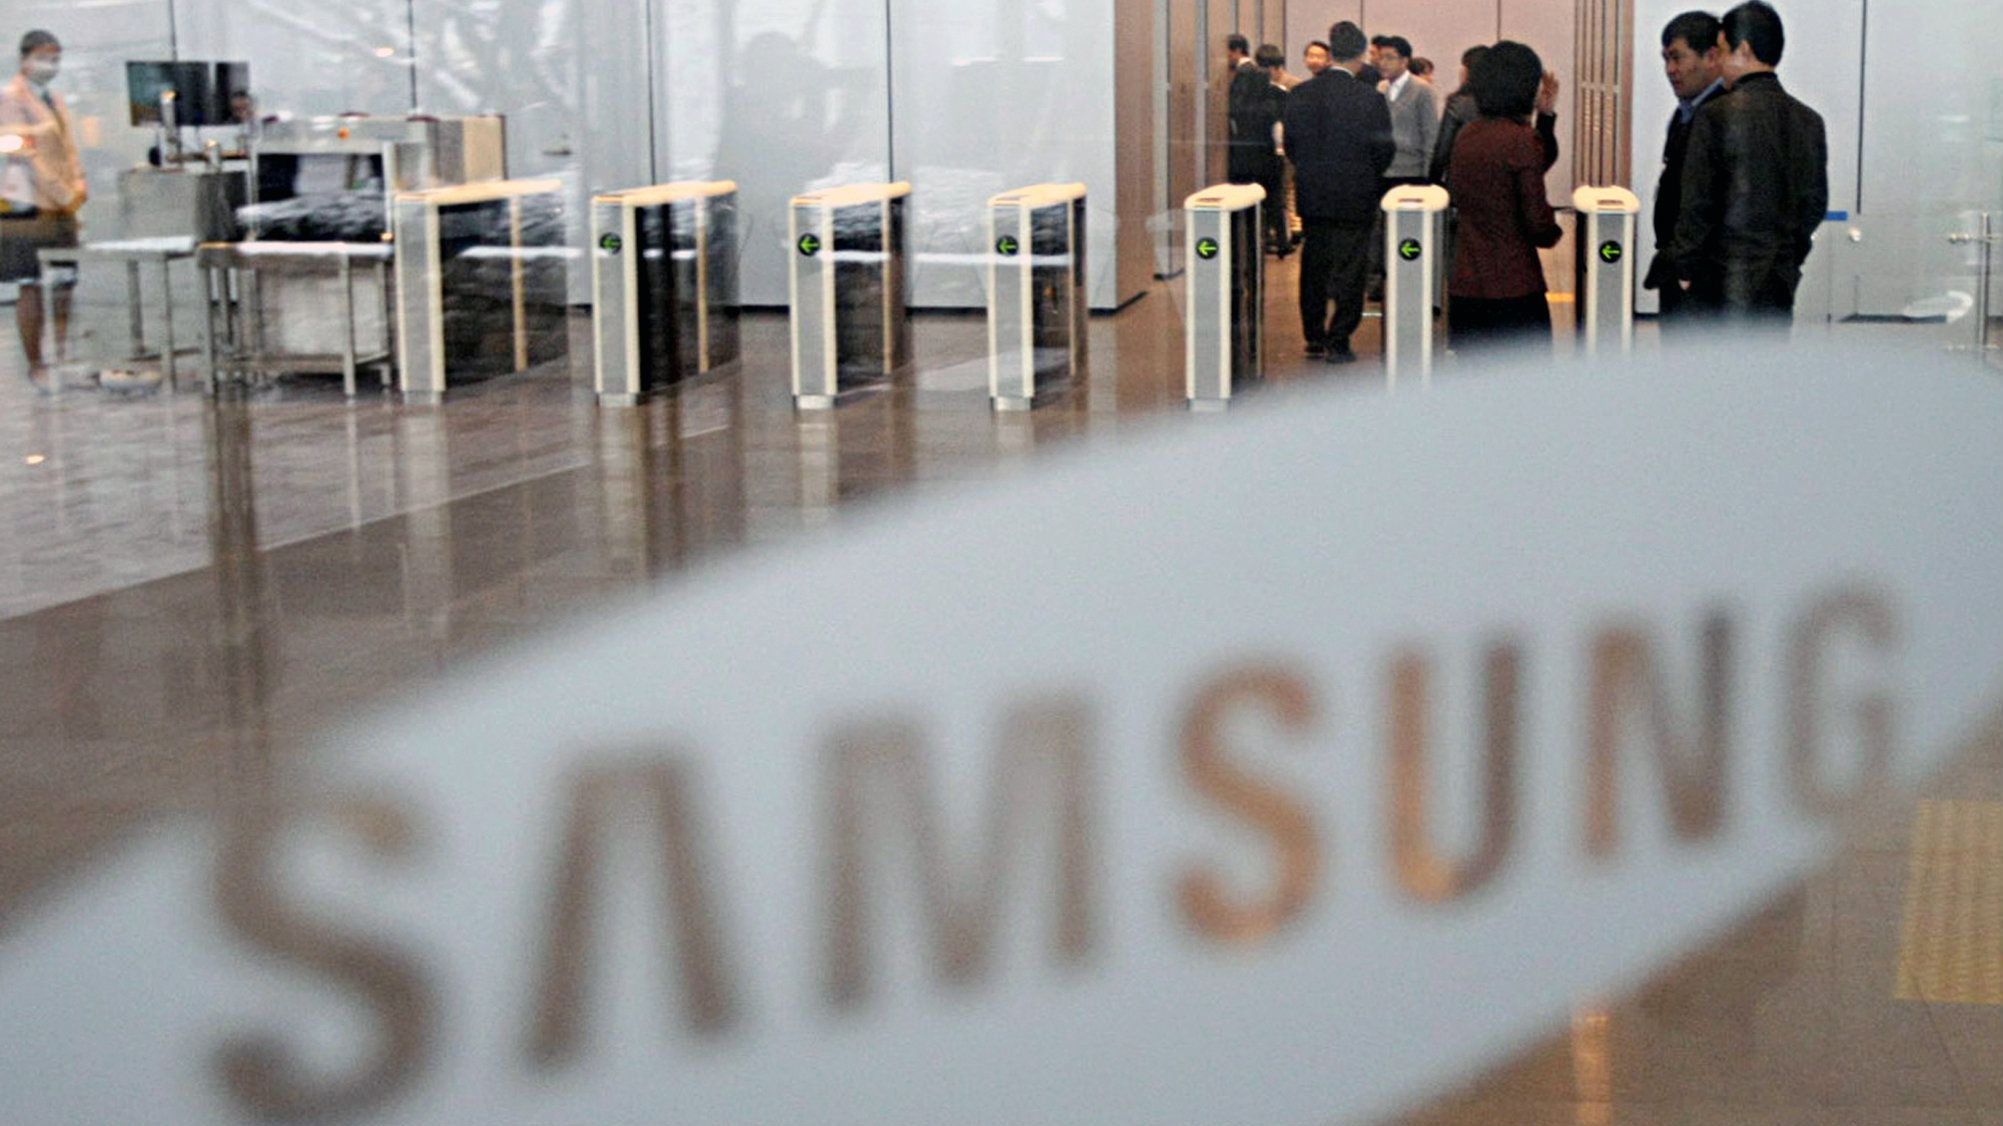 Employees of Samsung are seen next to a logo at Samsung Electronics head office in Seoul, South Korea, Friday, Jan. 16, 2009. Samsung Electronics Co. said Friday it will consolidate four key businesses _ semiconductors, liquid crystal displays, mobile phones and televisions _ into two divisions as the company deals with the slowing global economy.(AP Photo/ Yonhap, Kim Ju-sung)